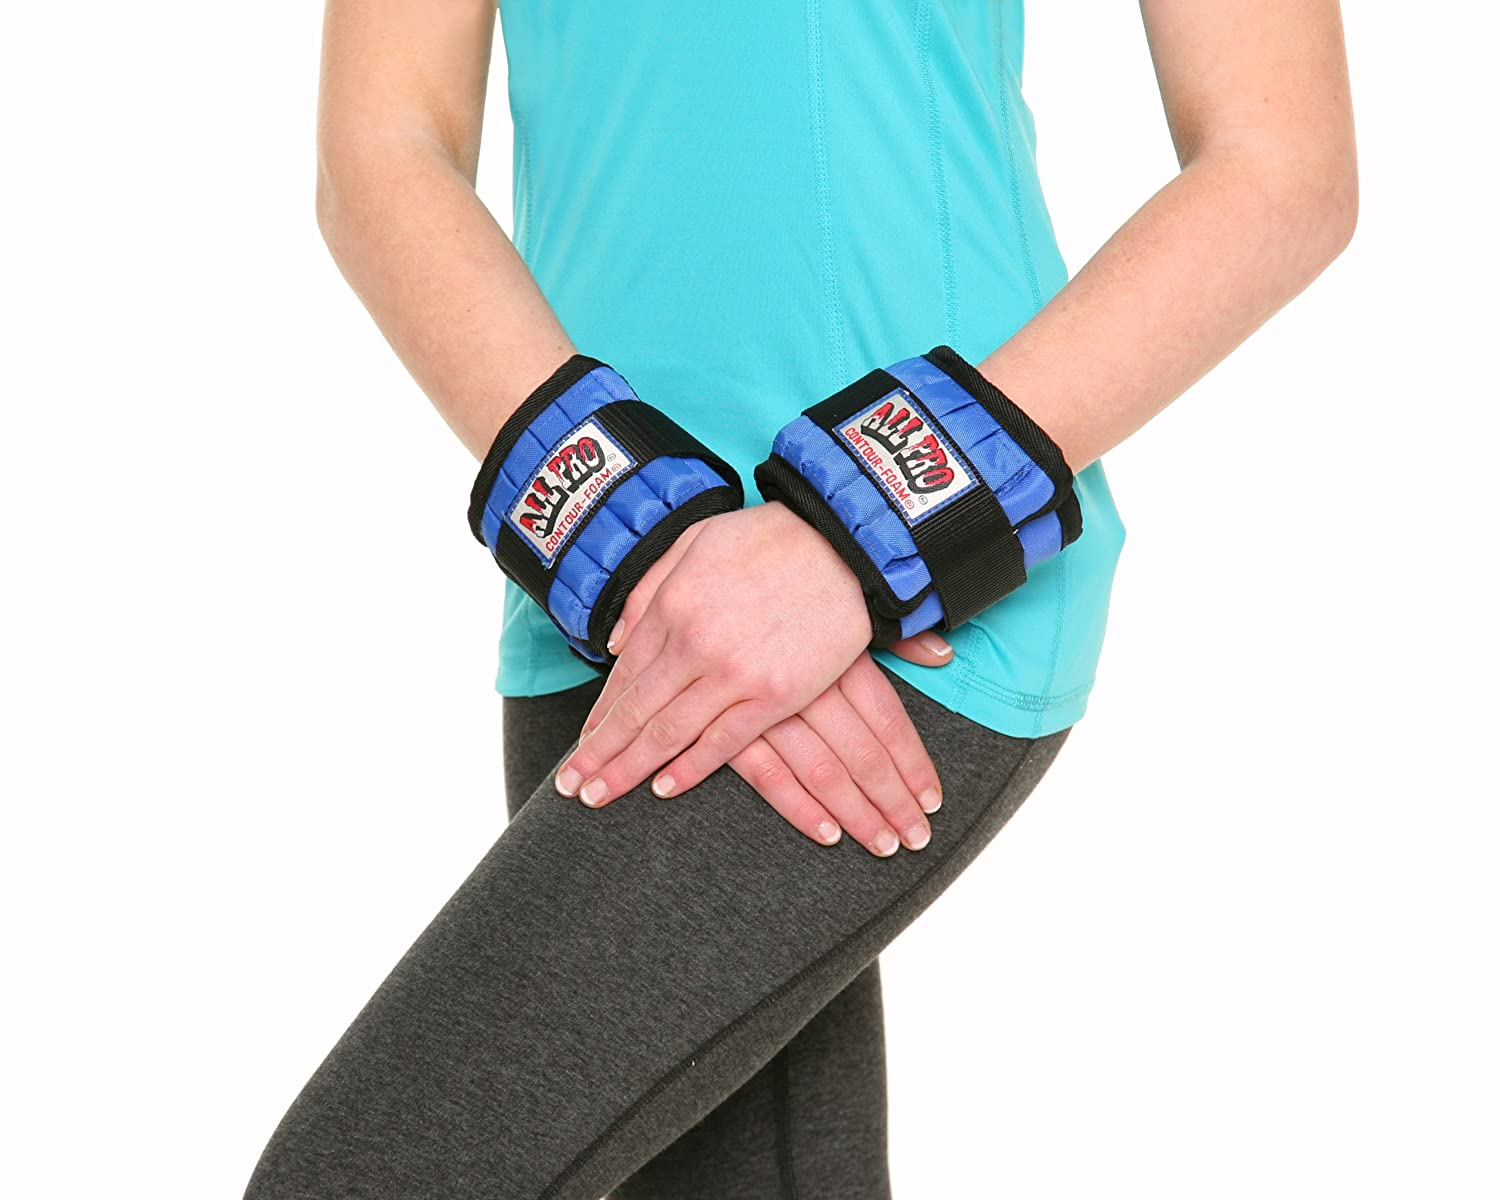 All Pro Weight Adjustable Wrist Weights, 4-Pound All Pro Weights 600